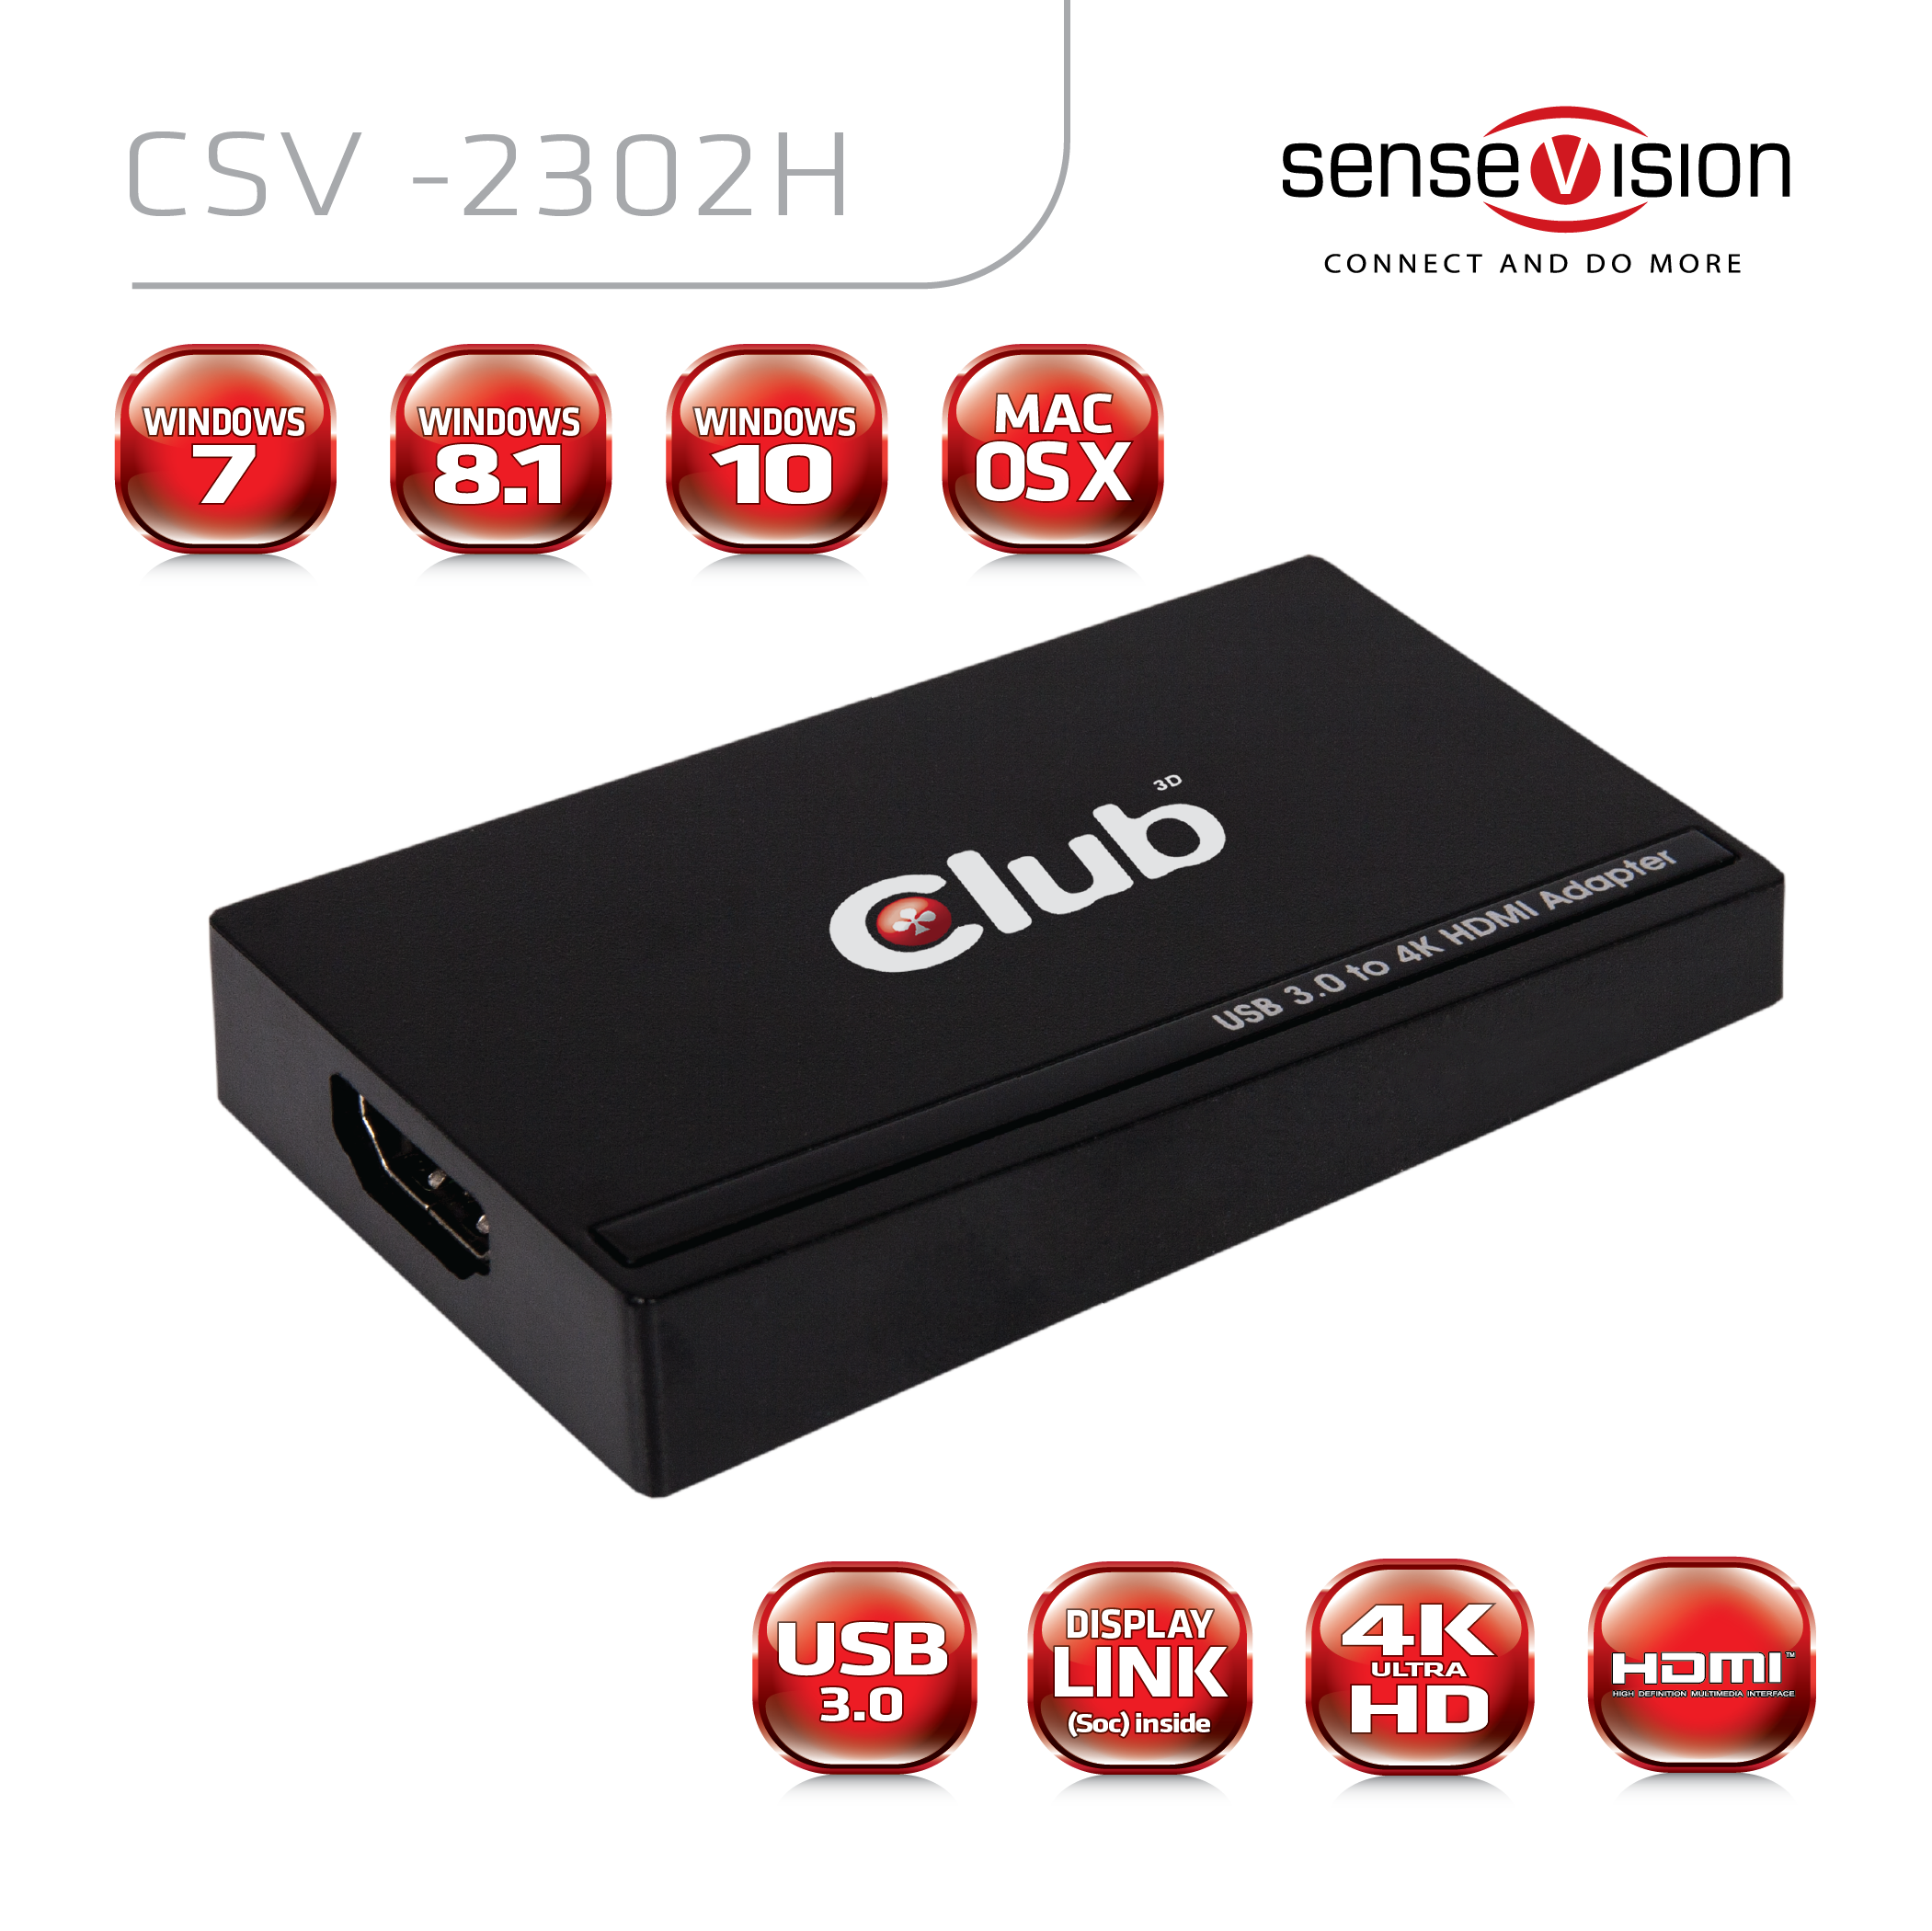 CLUB 3D USB 3.0 TO HDMI 4K 30Hz UHD ADAPTER